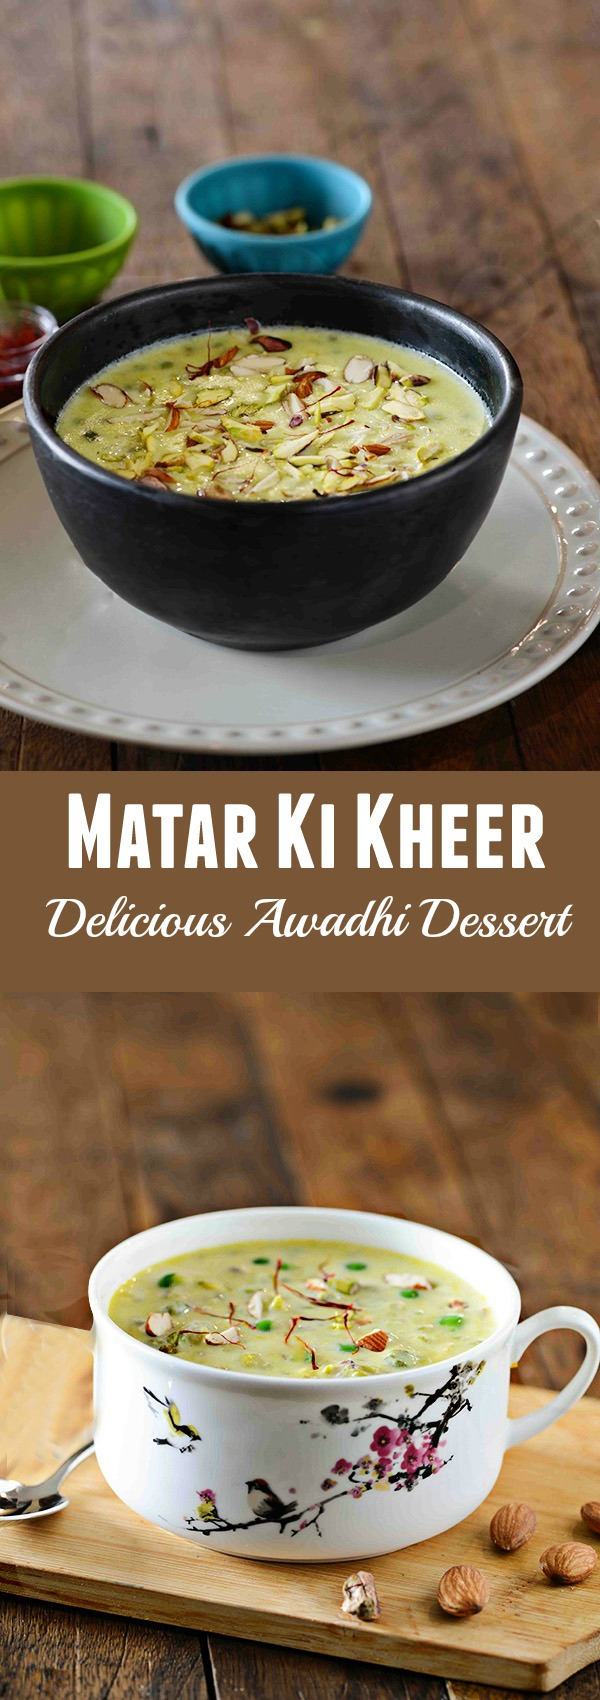 Hare Matar ki Kheer or green peas kheer is kheer made with green peas or hare matar. This unusual kheer recipe finds it's origin from Awadhi cuisine. An Indian dessert that is Rich delicious and creamy